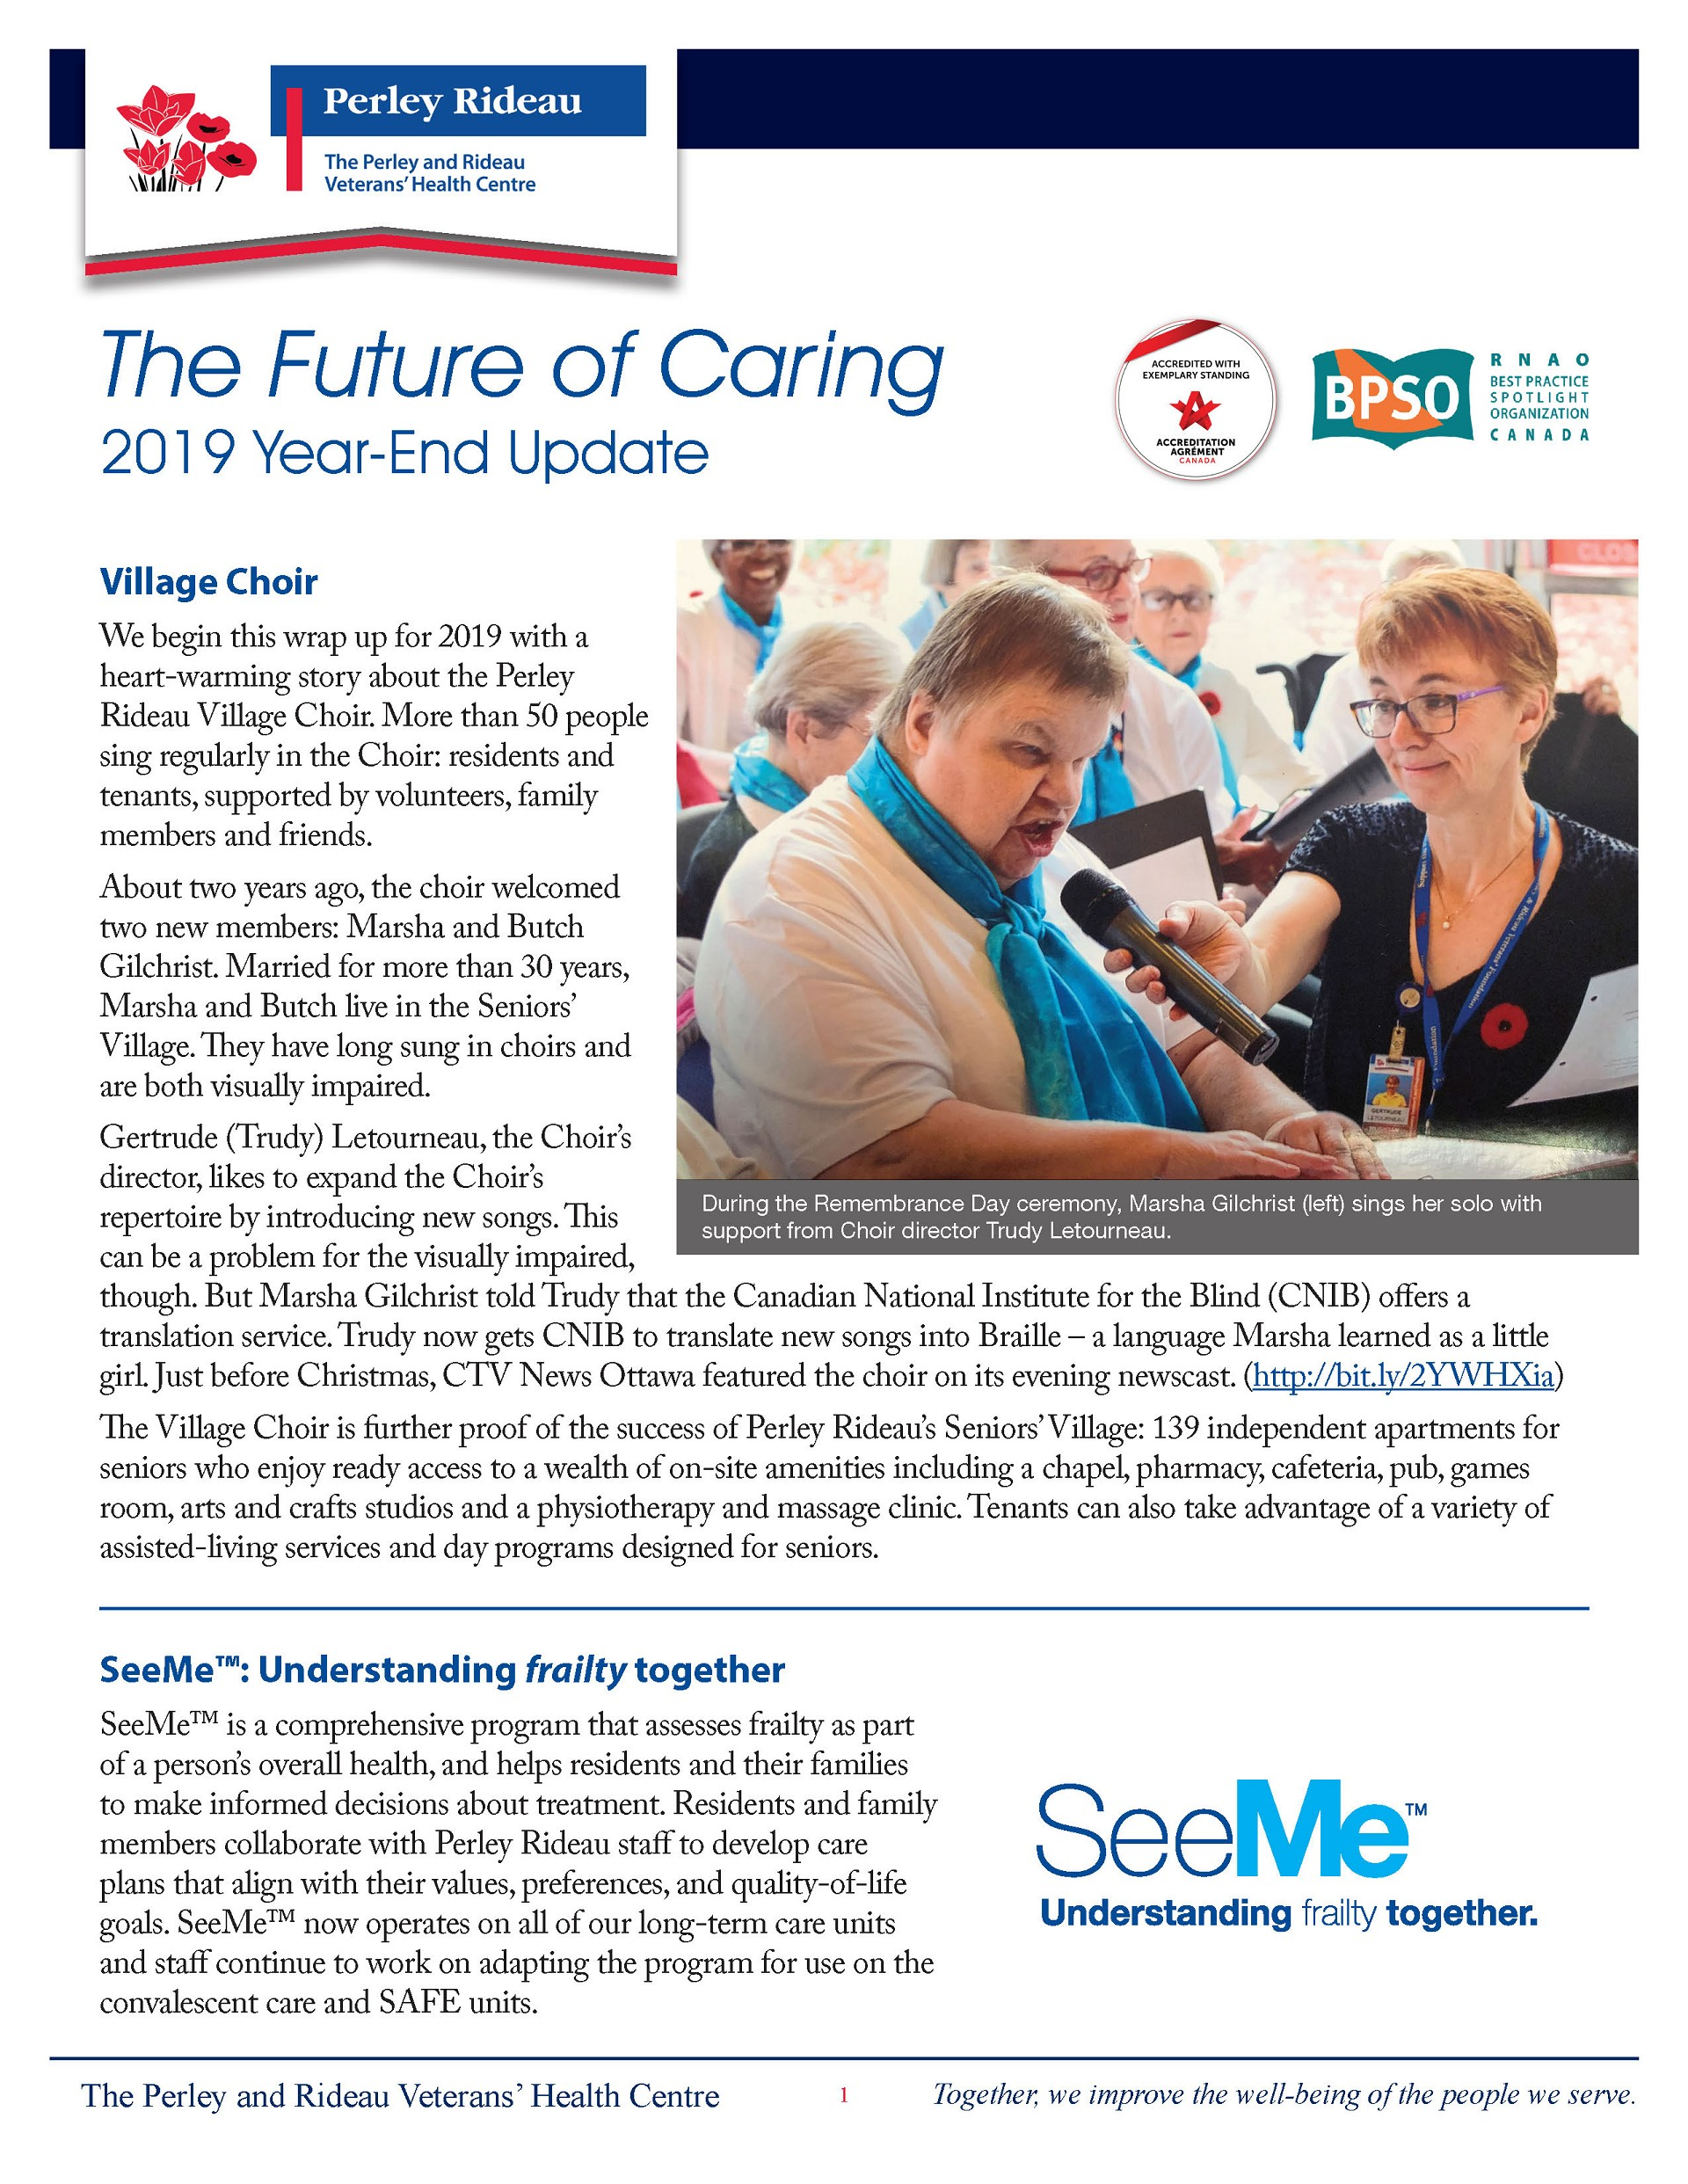 future_of_caring_2019_year_end_update_pa